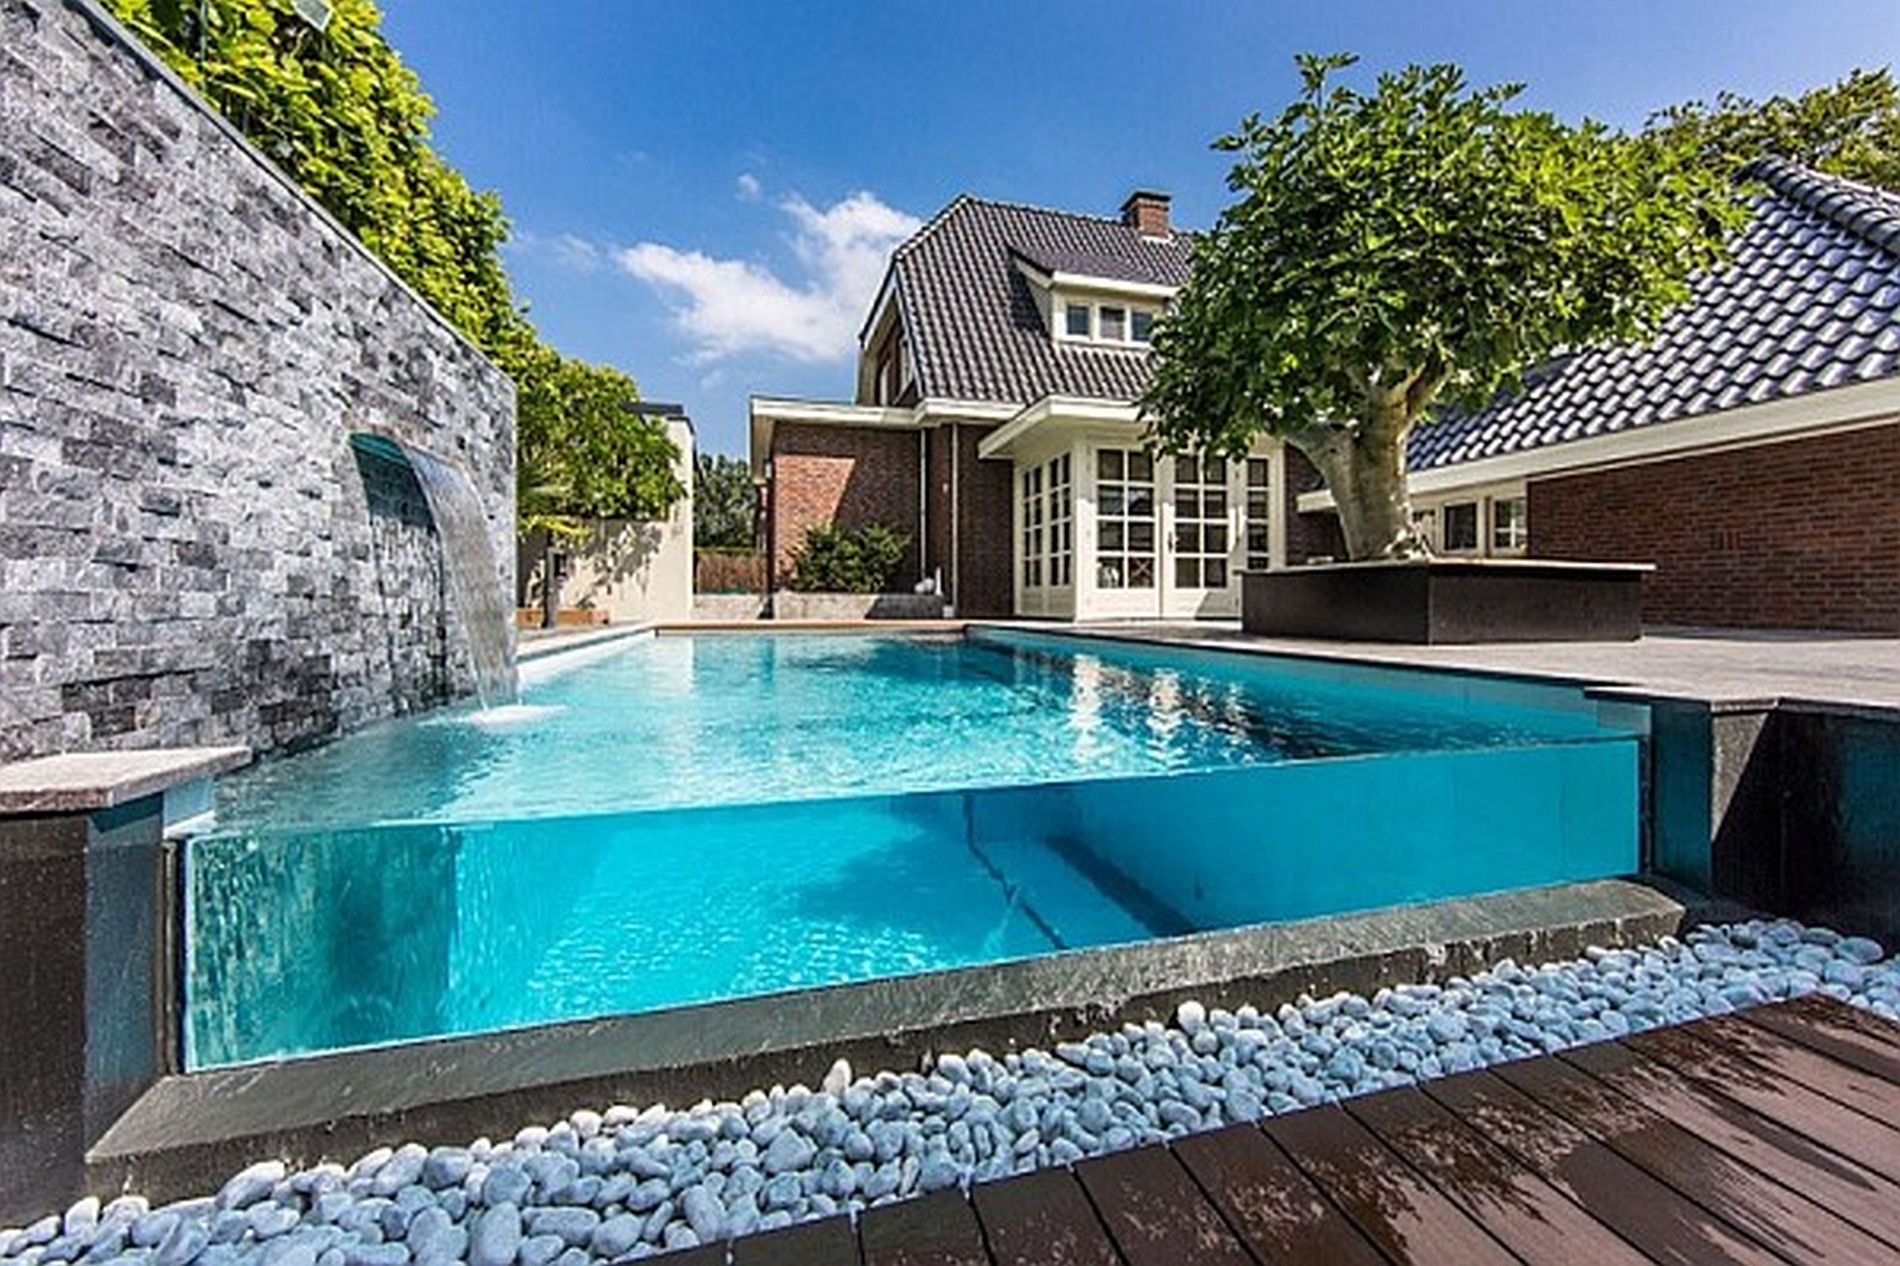 Creative Home Interior Design Modern Backyard Landscaping Swimming Pool Designs Luxury Swimming Pools